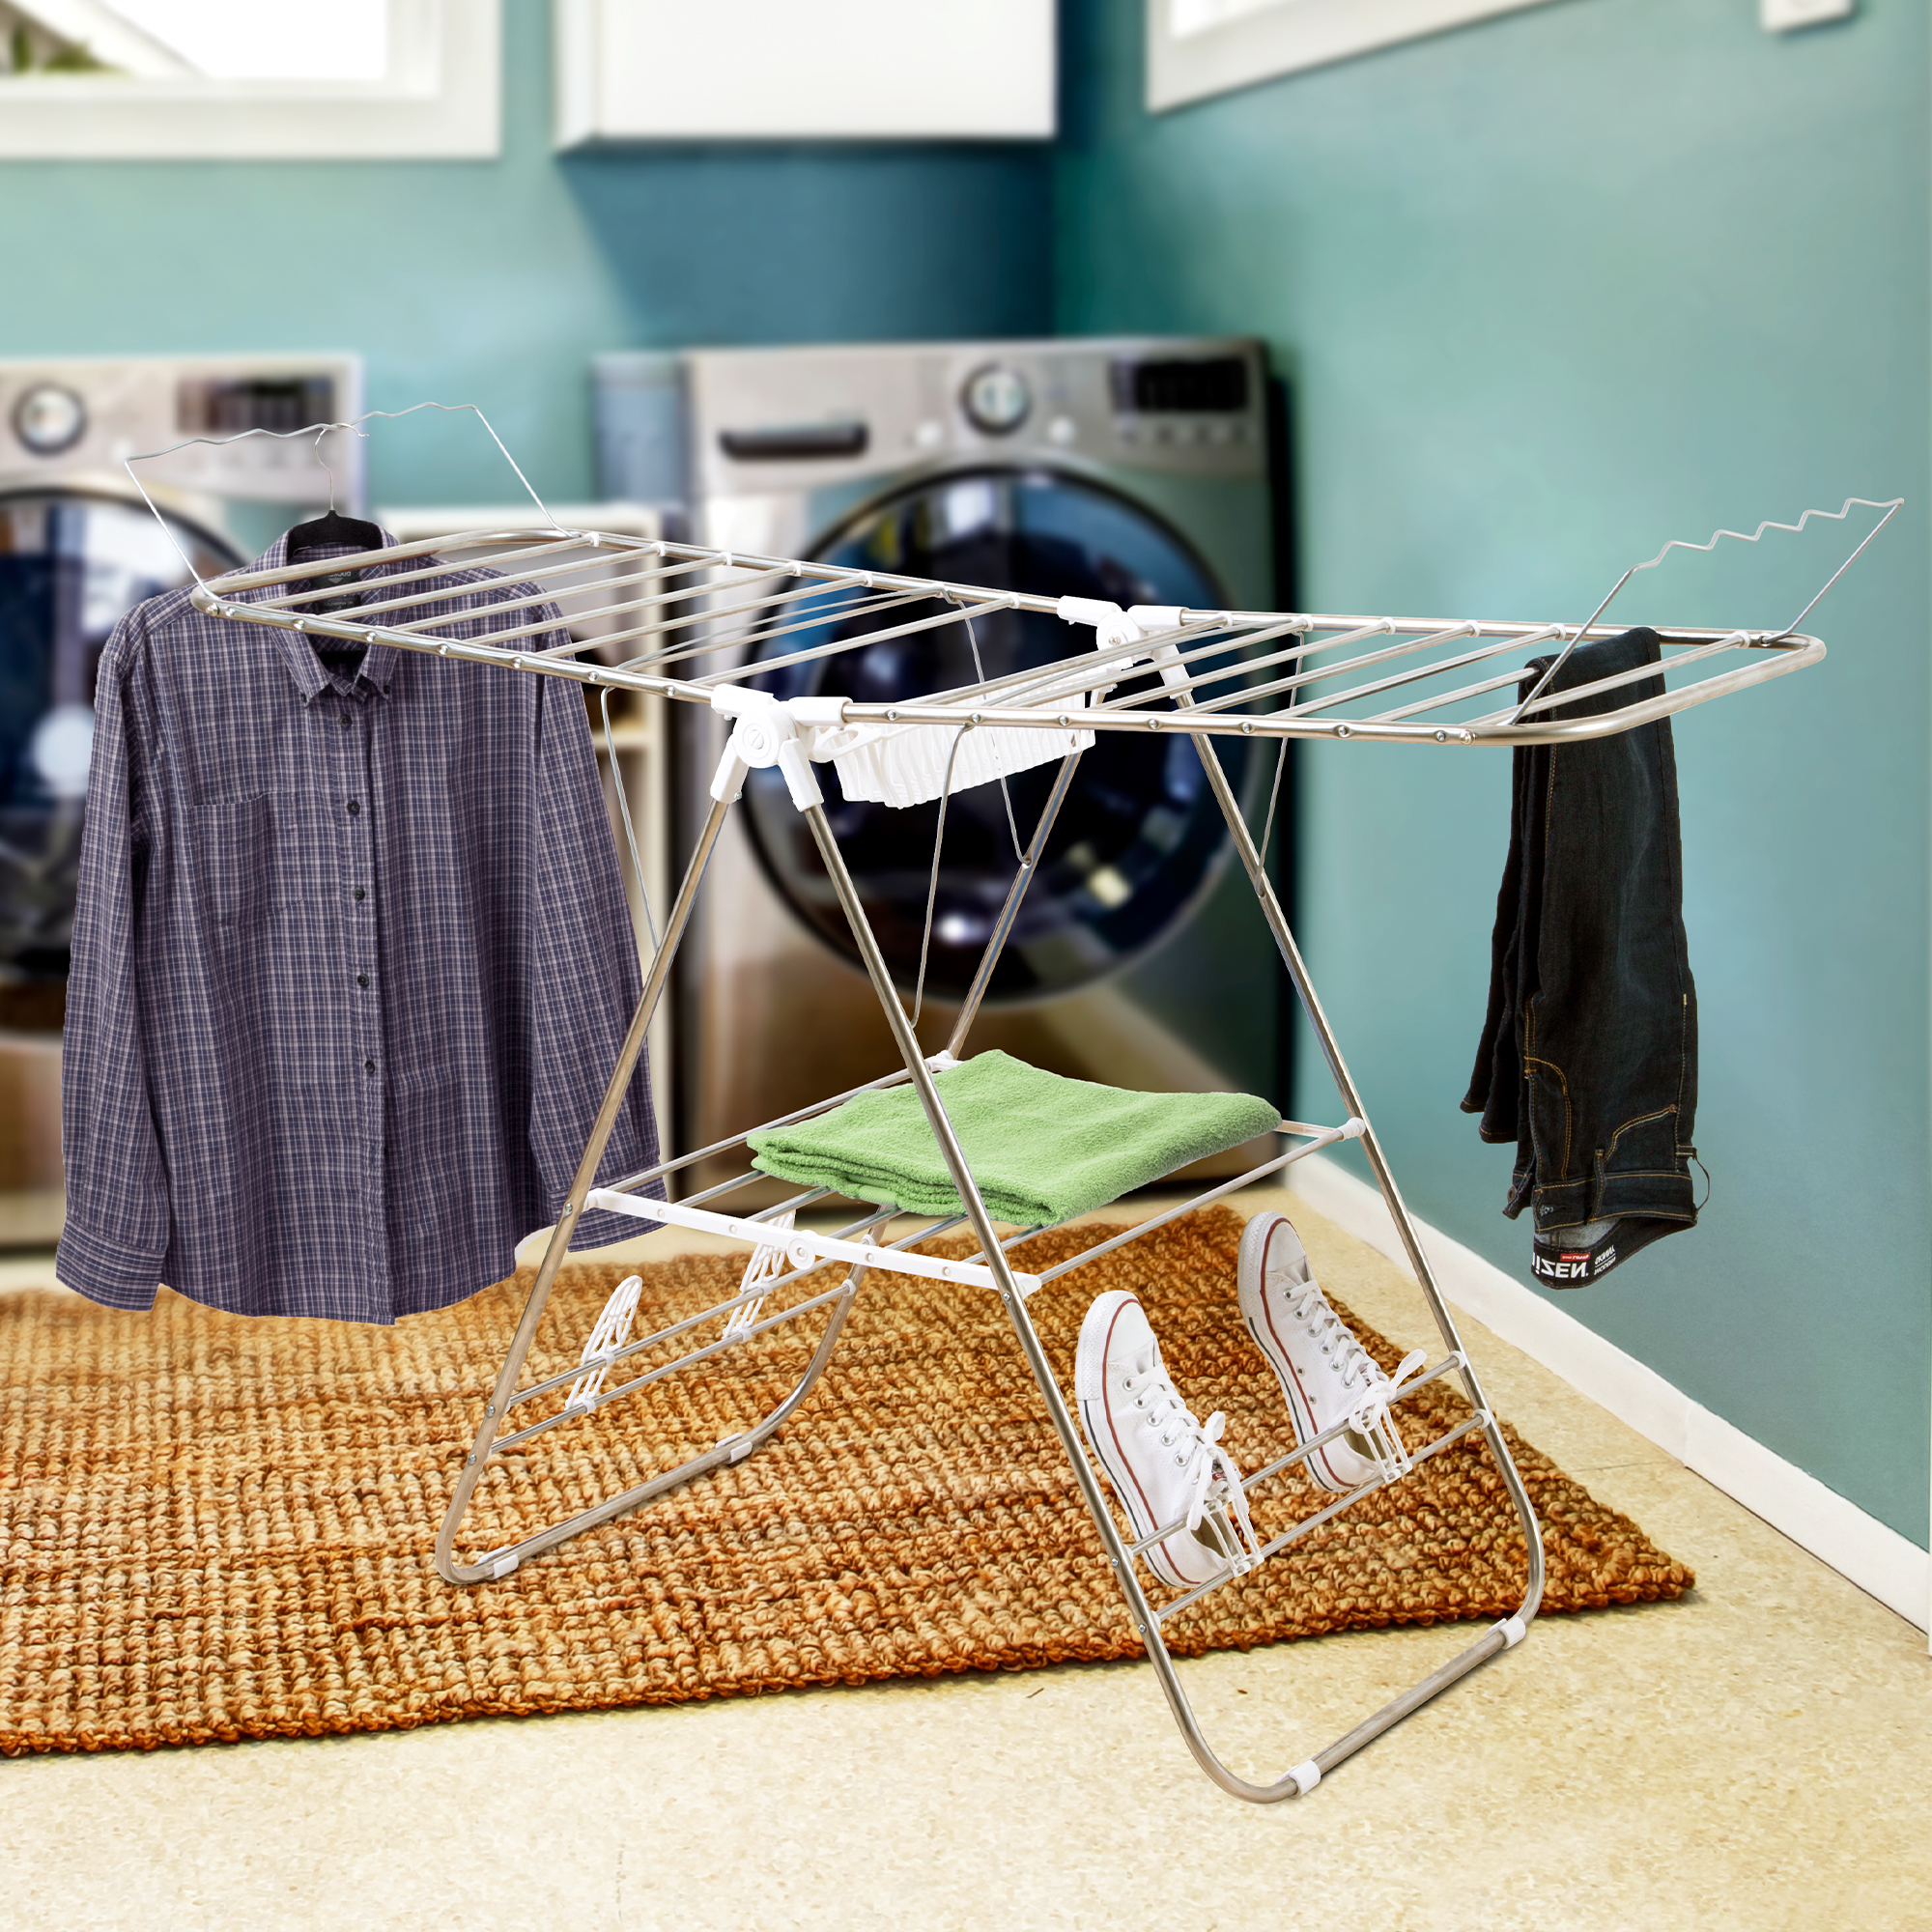 Heavy Duty Laundry Drying Rack- Chrome Steel Clothing Shelf for Indoor and Outdoor Use Best Used for Shirts Pants Towels Shoes by Everyday Home